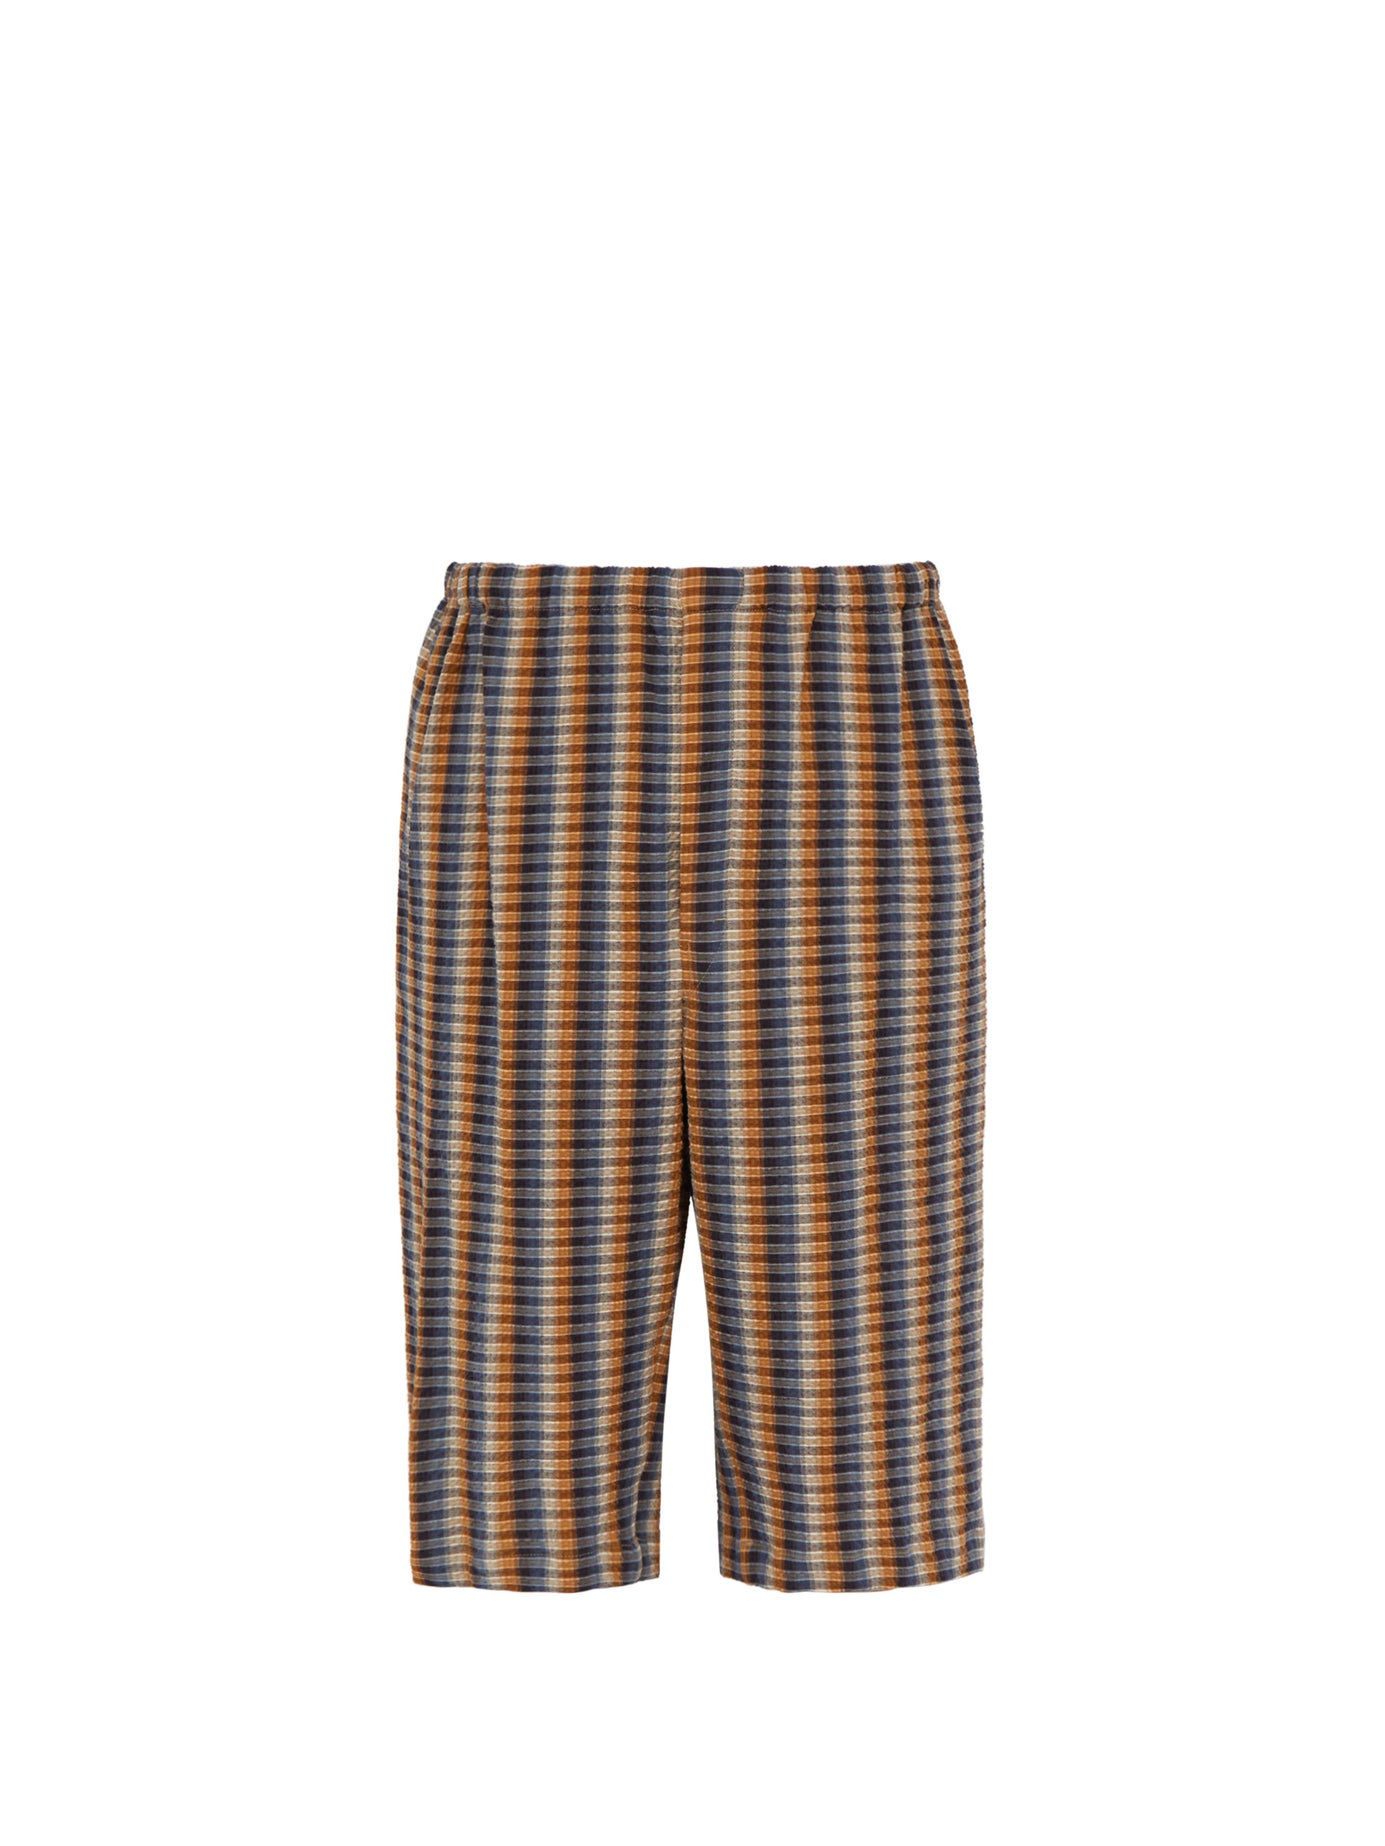 Lemaire shorts at Matches Fashion - £340 - Who said that short shorts were in for SS19?!